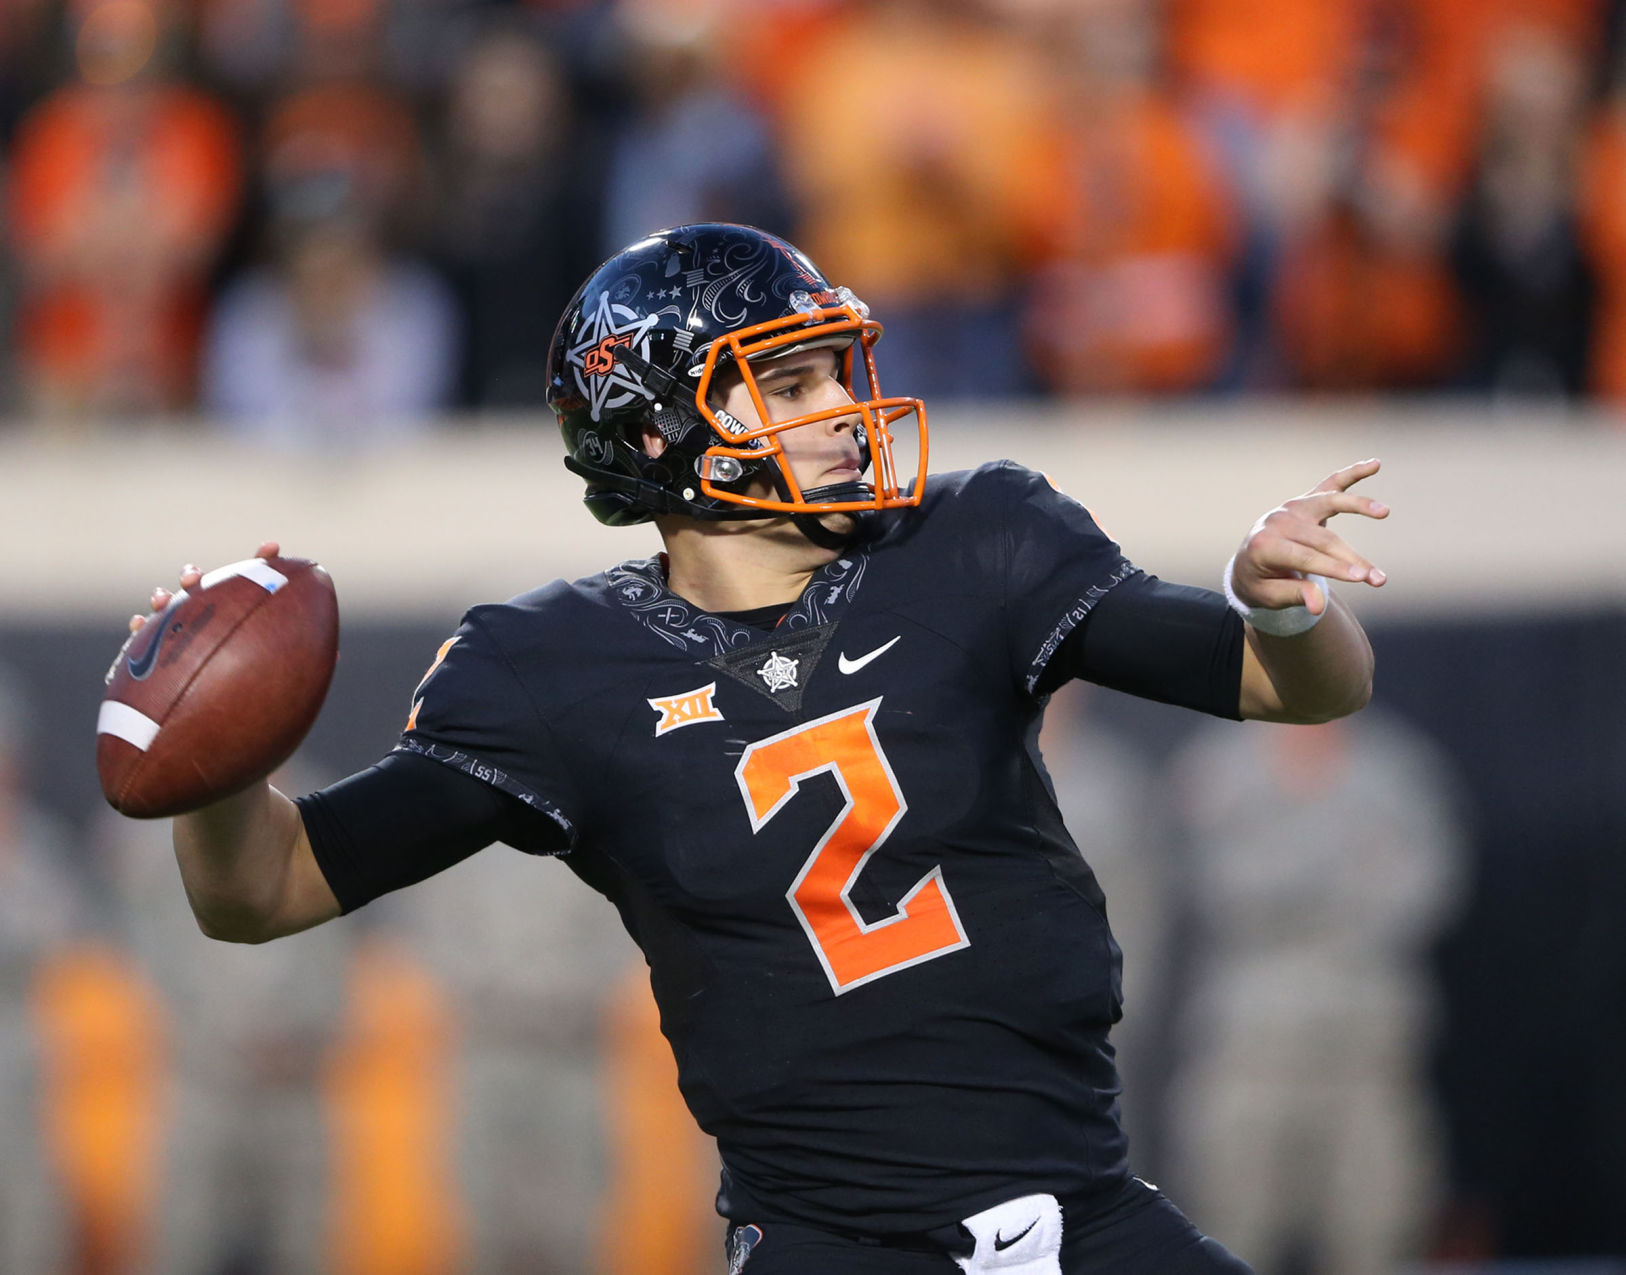 OSU Sports Extra - This week in Oklahoma State football ...